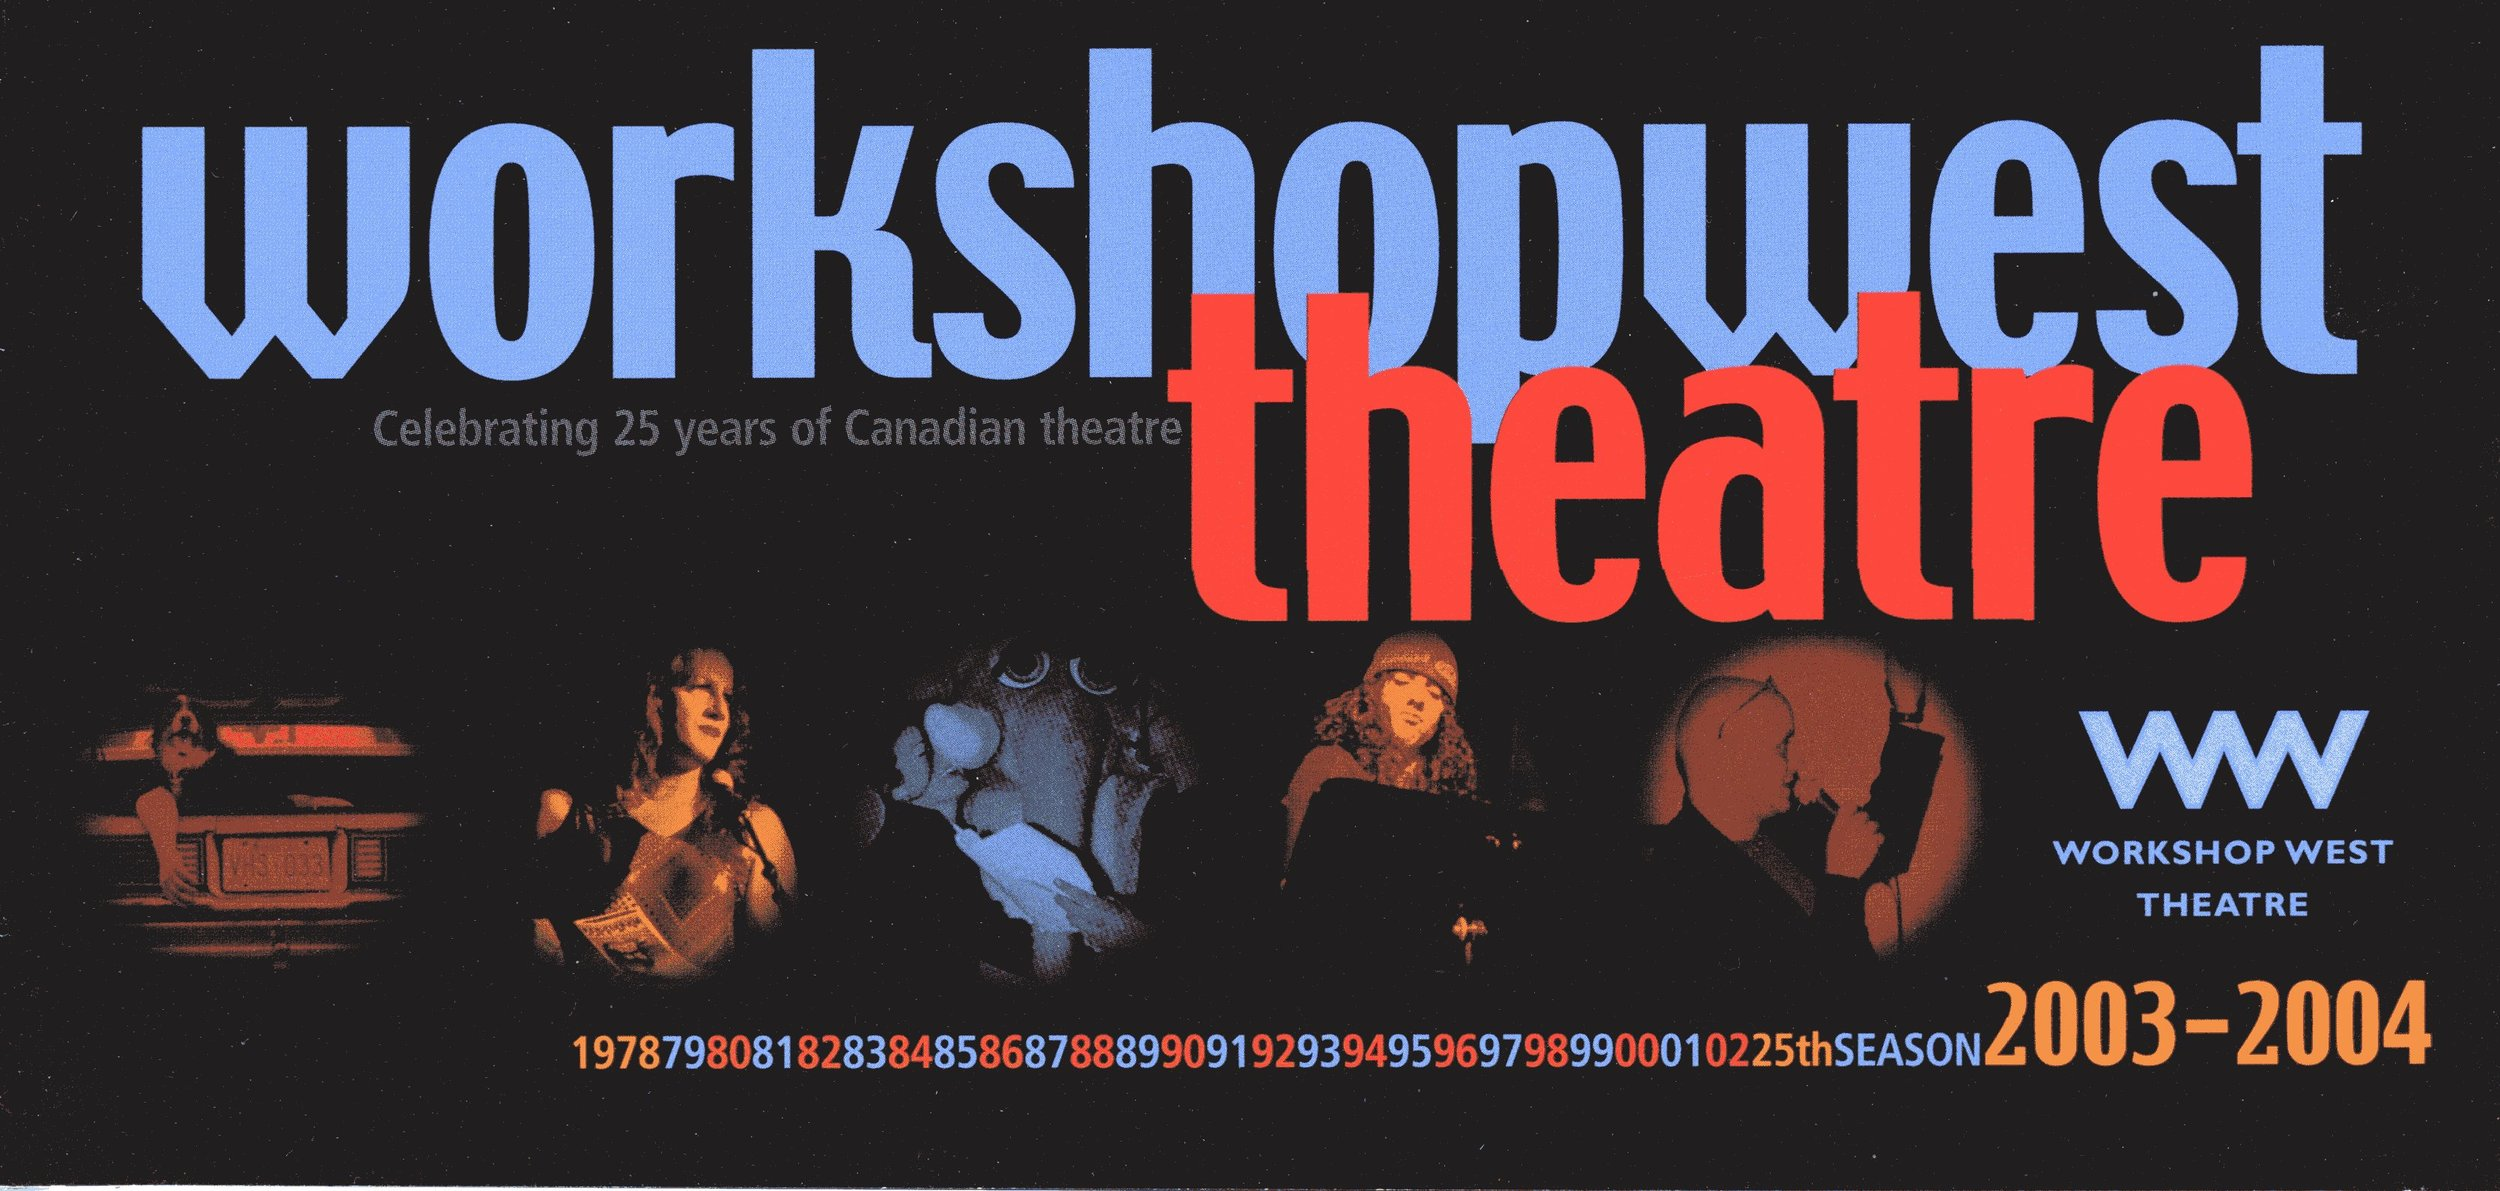 Season 26 (2003-2004) Program Book Cover.jpg